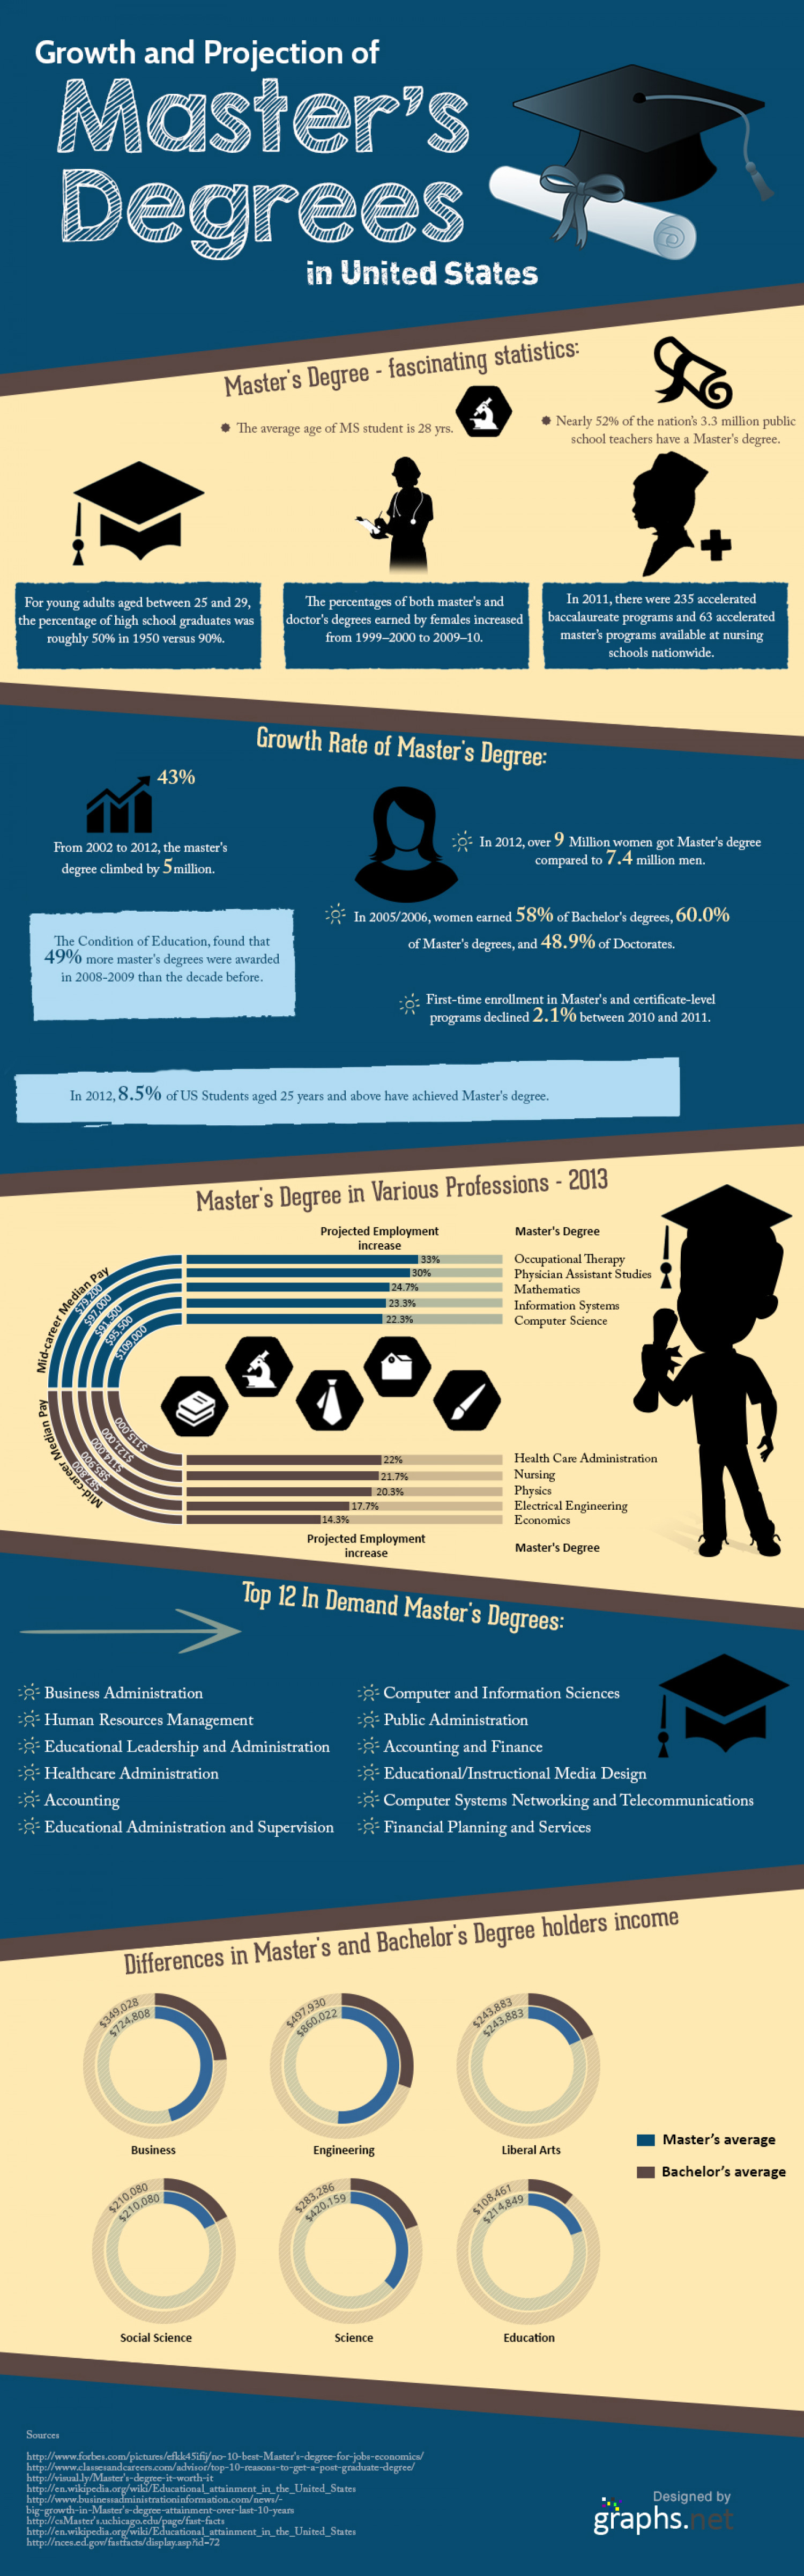 Growth and Projection Of Master's Degrees In United States Over The Years Infographic